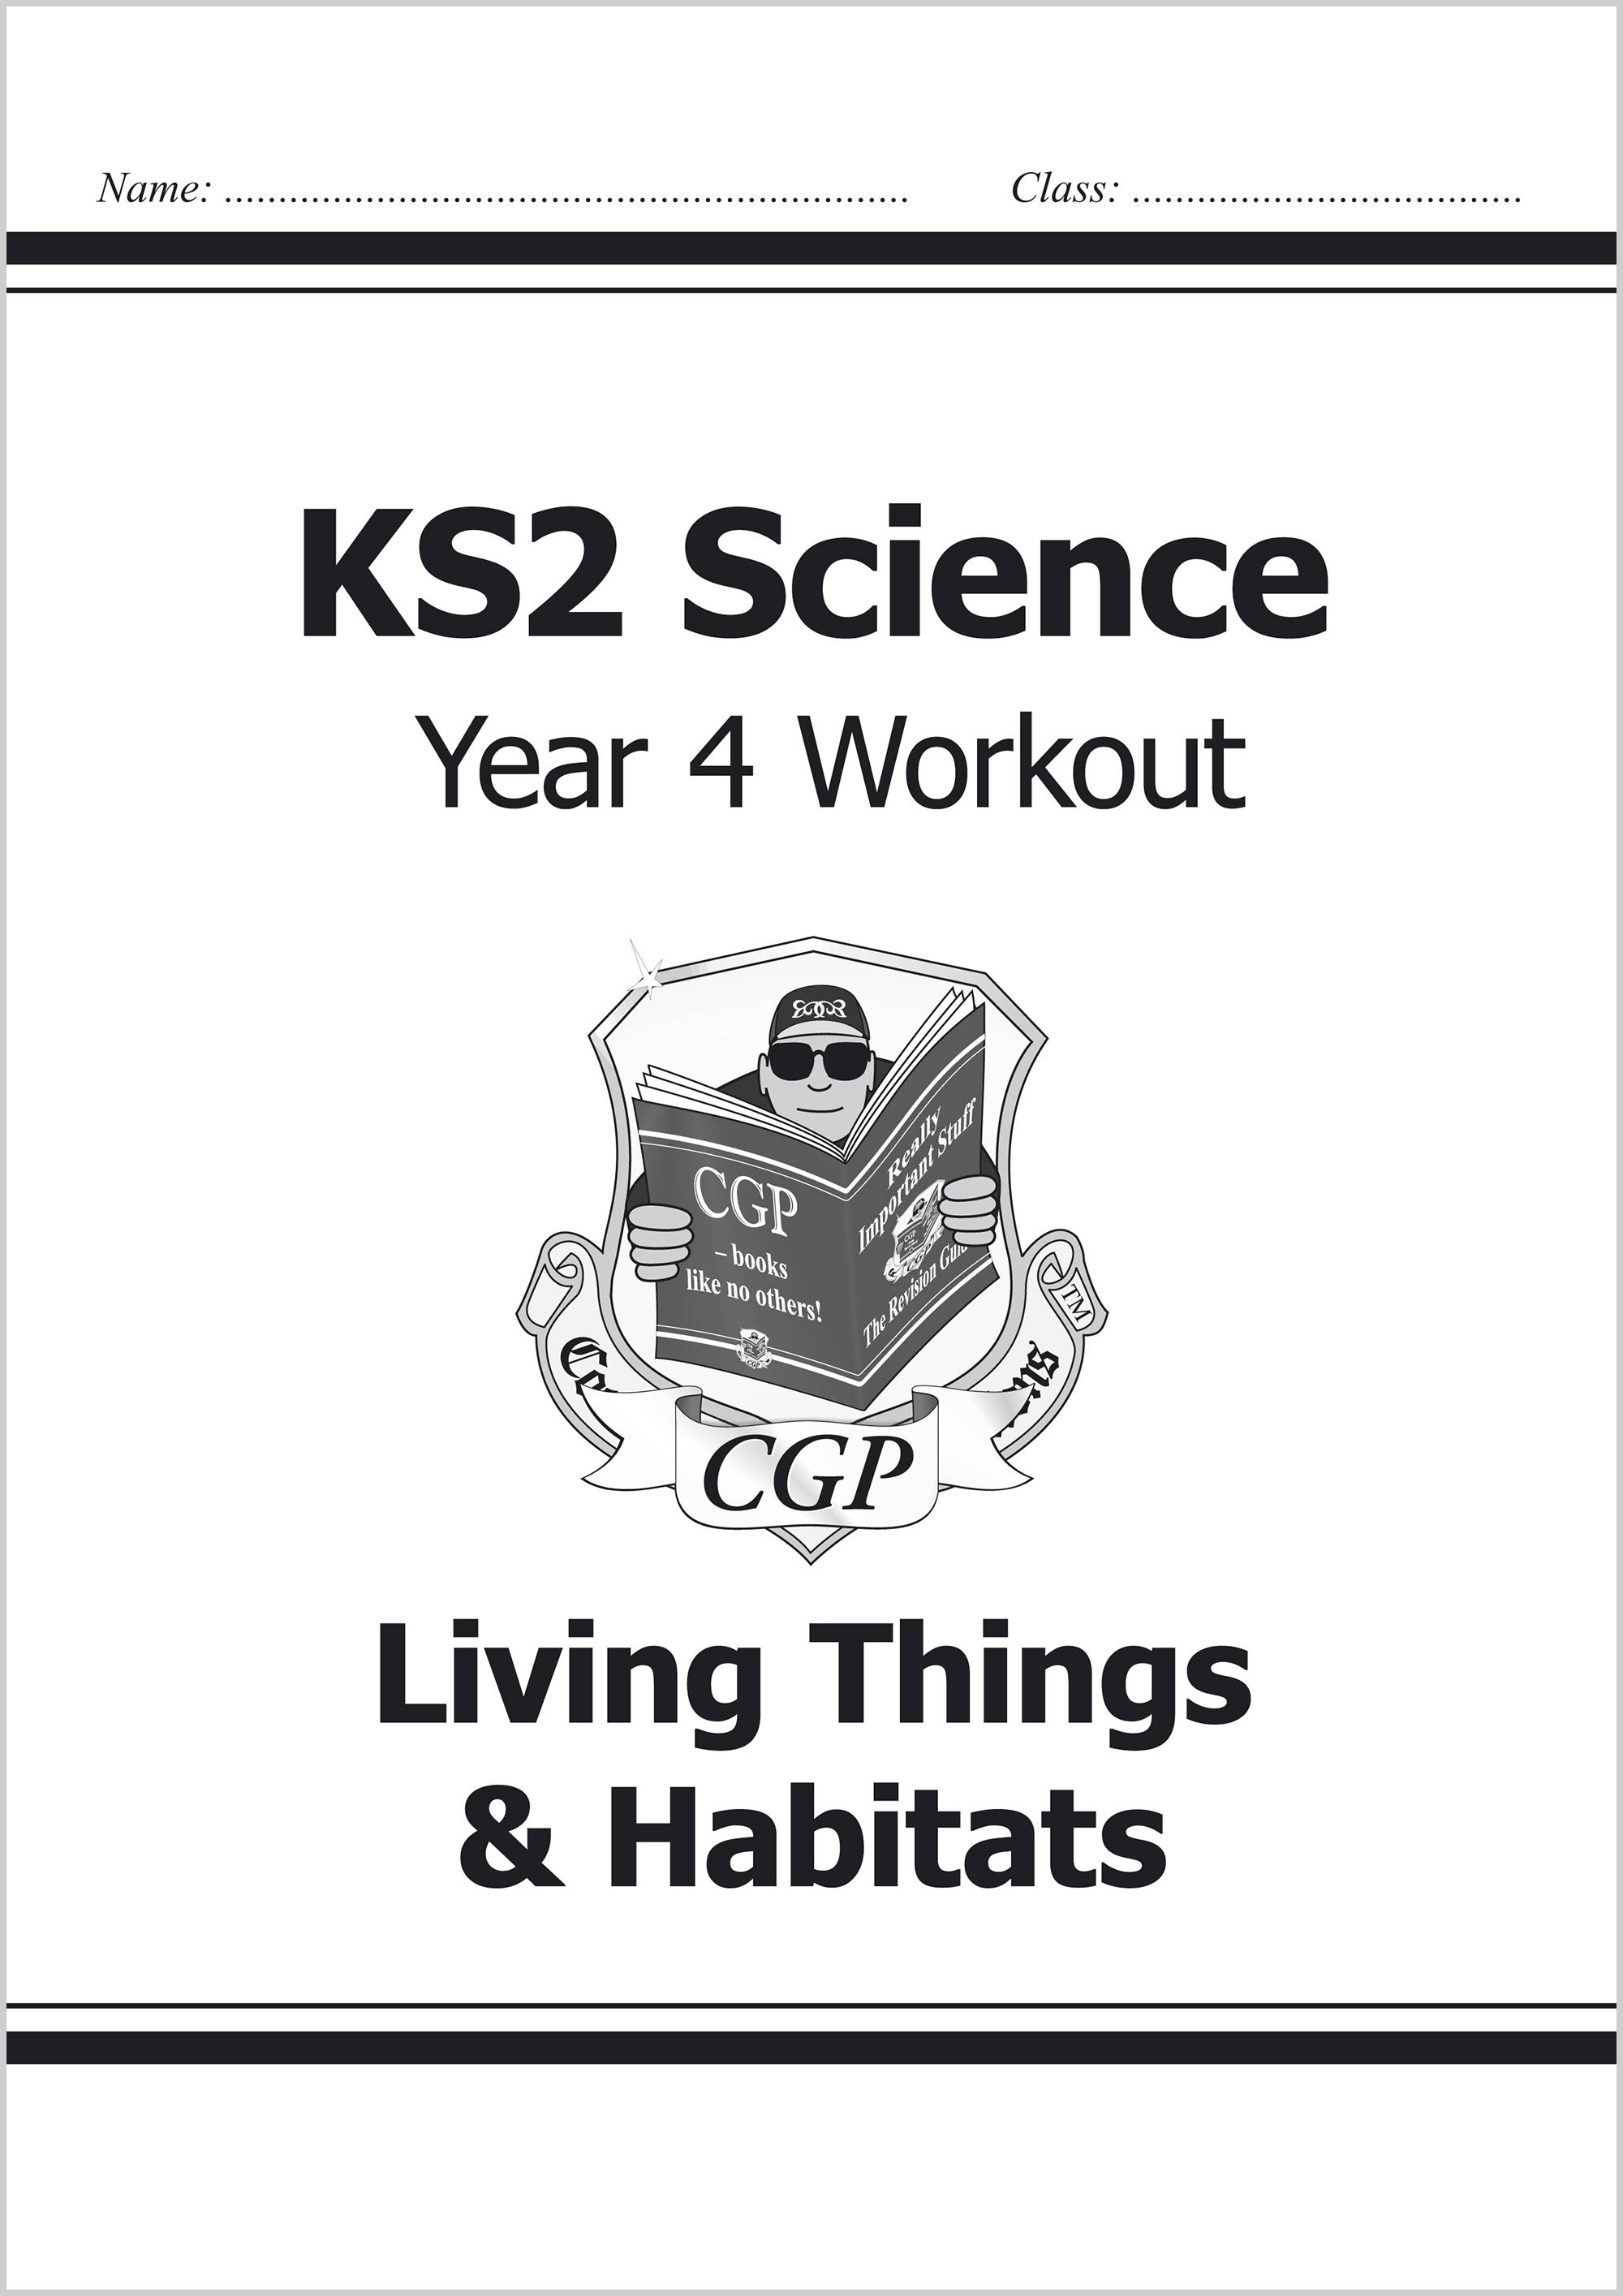 S4A22 - KS2 Science Year Four Workout: Living Things & Habitats